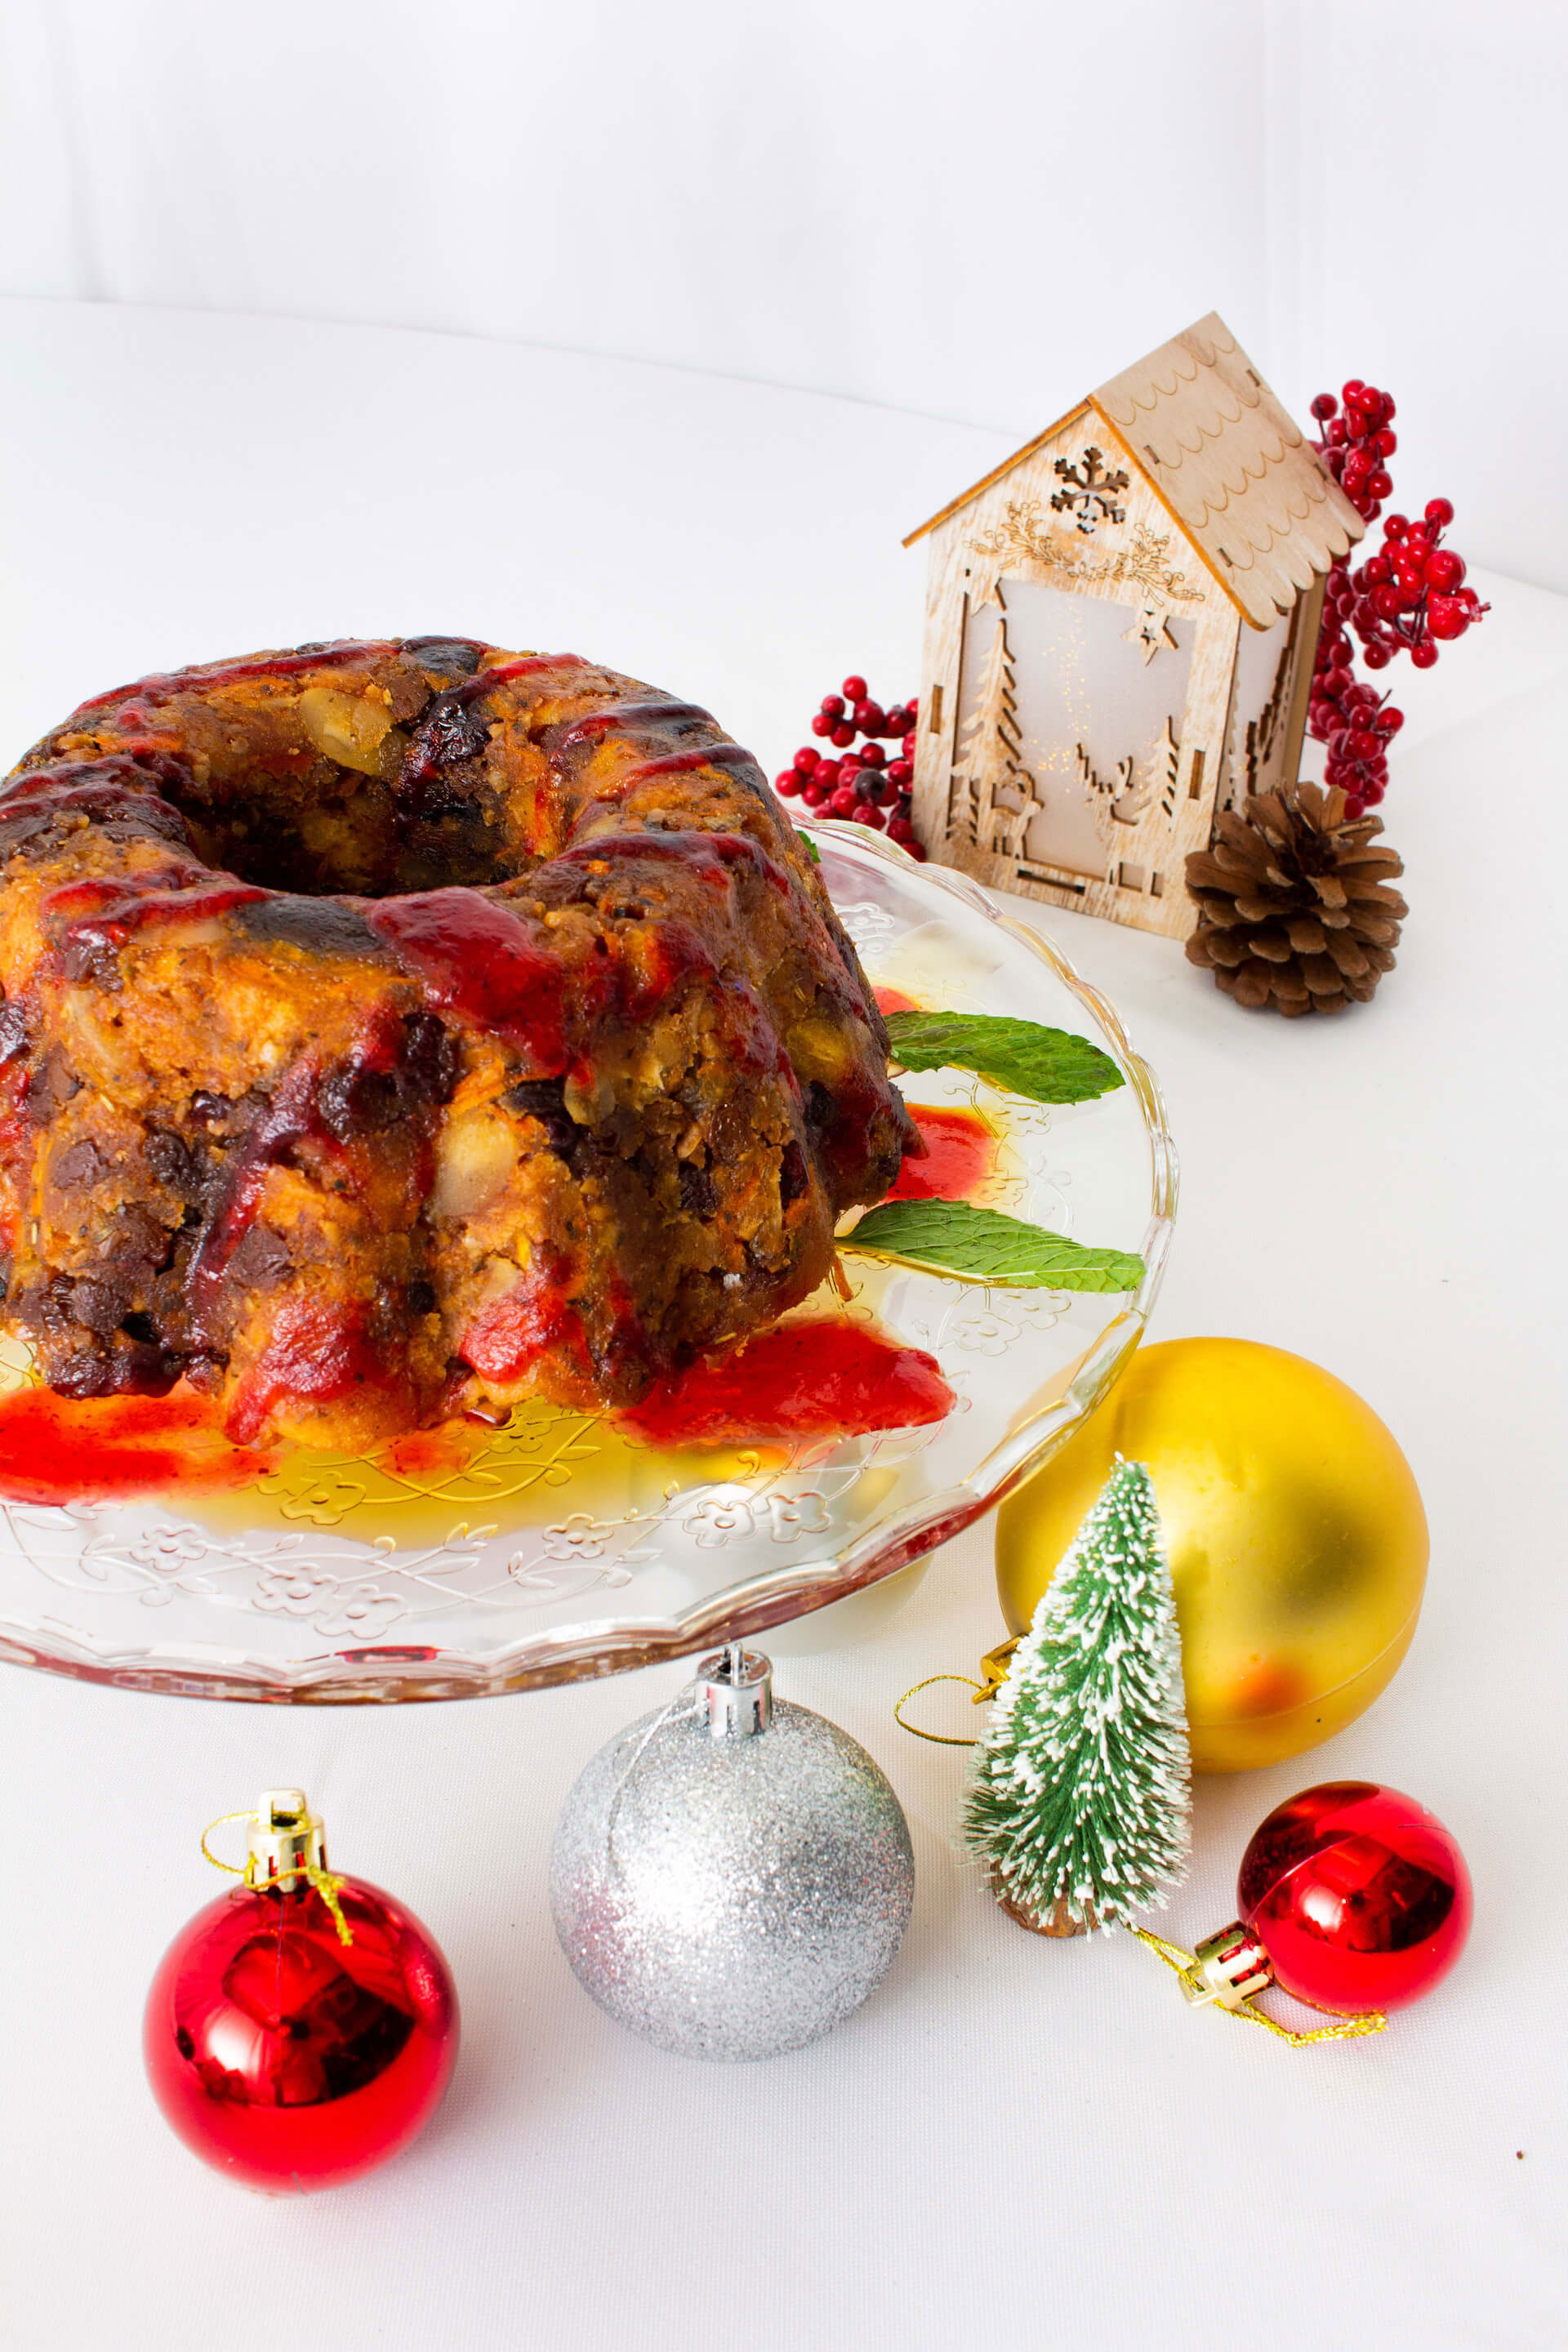 Classic Christmas Pudding with Brandy-Butter Sauce